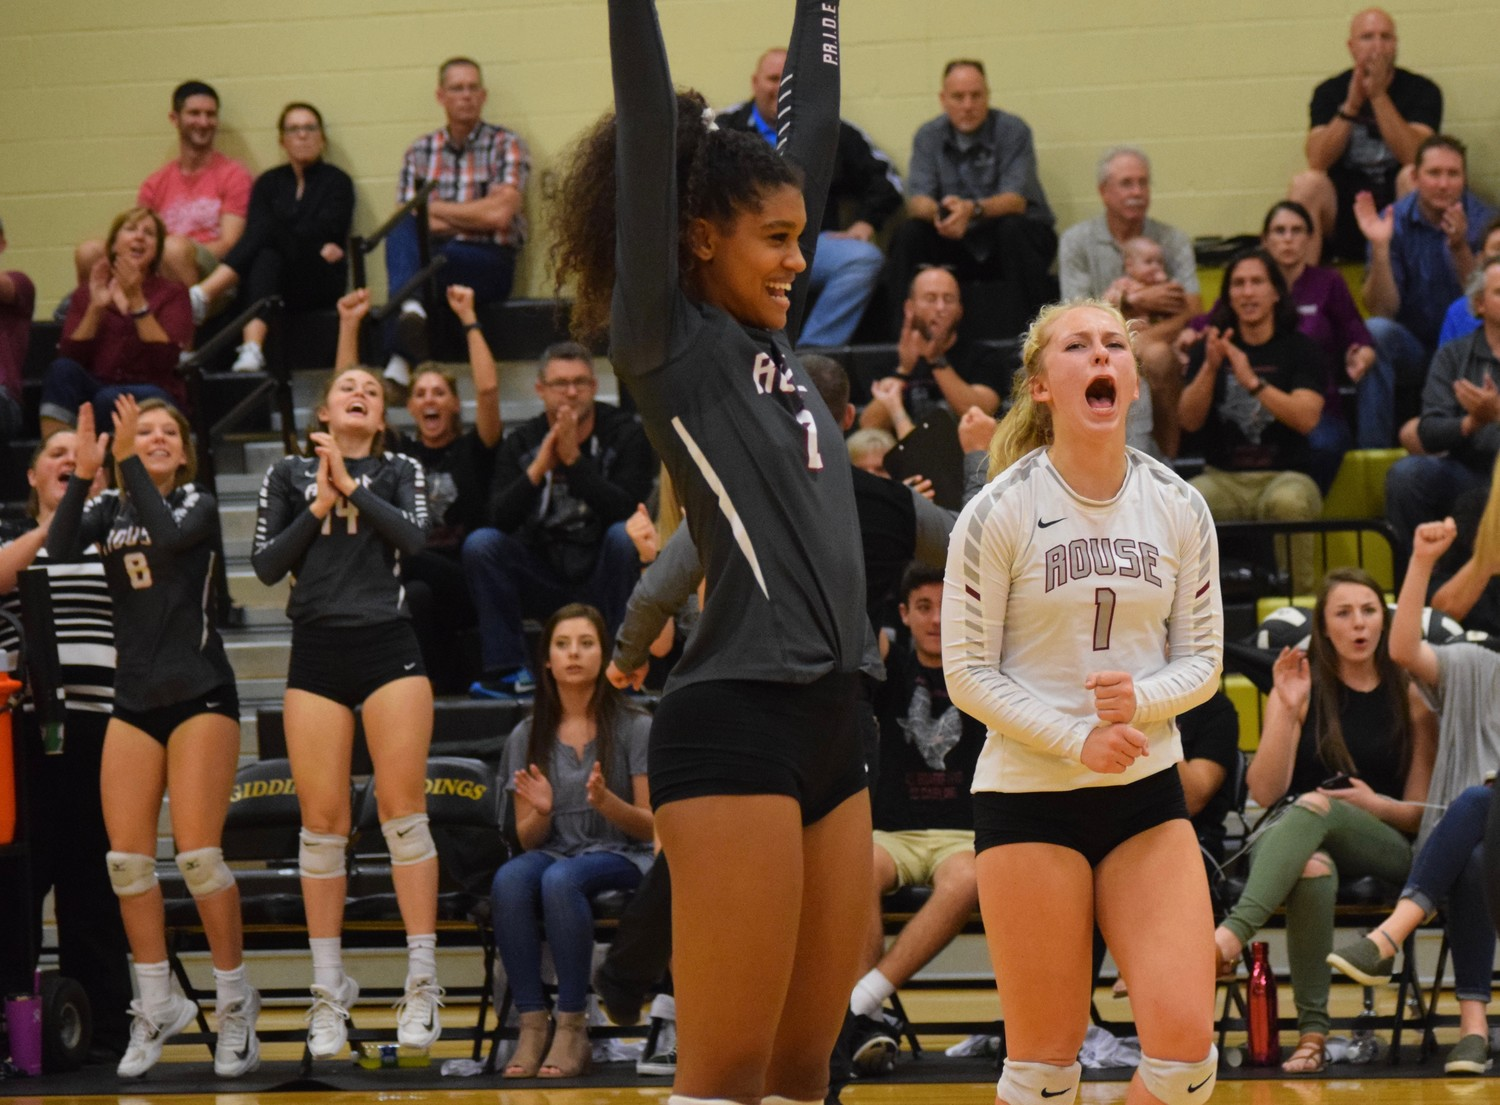 Rouse swept College Station 3-0 (20-16, 25-20, 25-17) Thursday night at Giddings High School to advance to the regional quarterfinals.